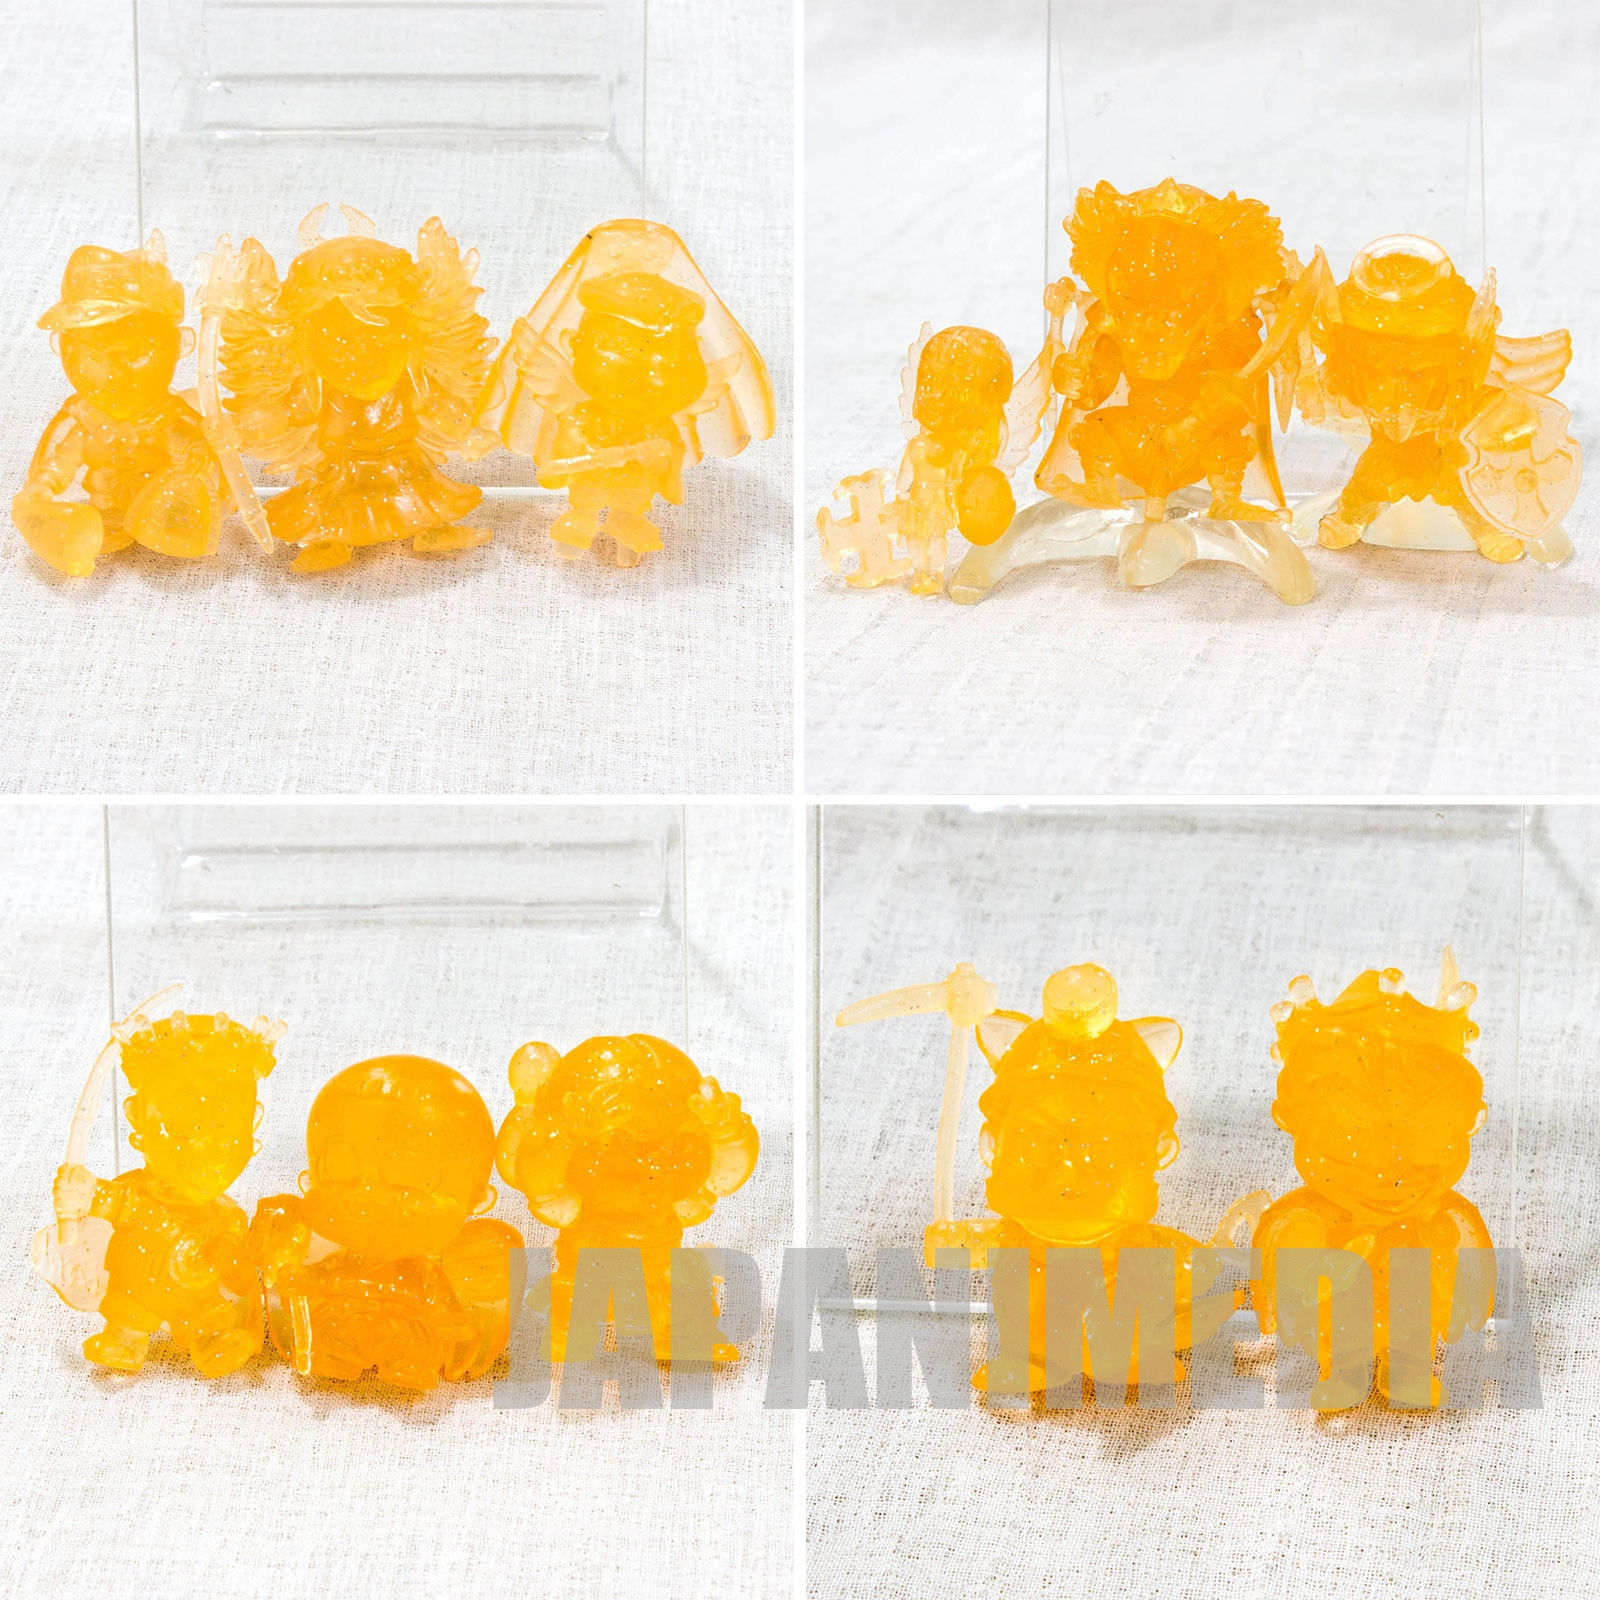 Bikkuriman Bikkuri Collection Mini Figure (Clear color  ver.) 11pc set Bandai JAPAN